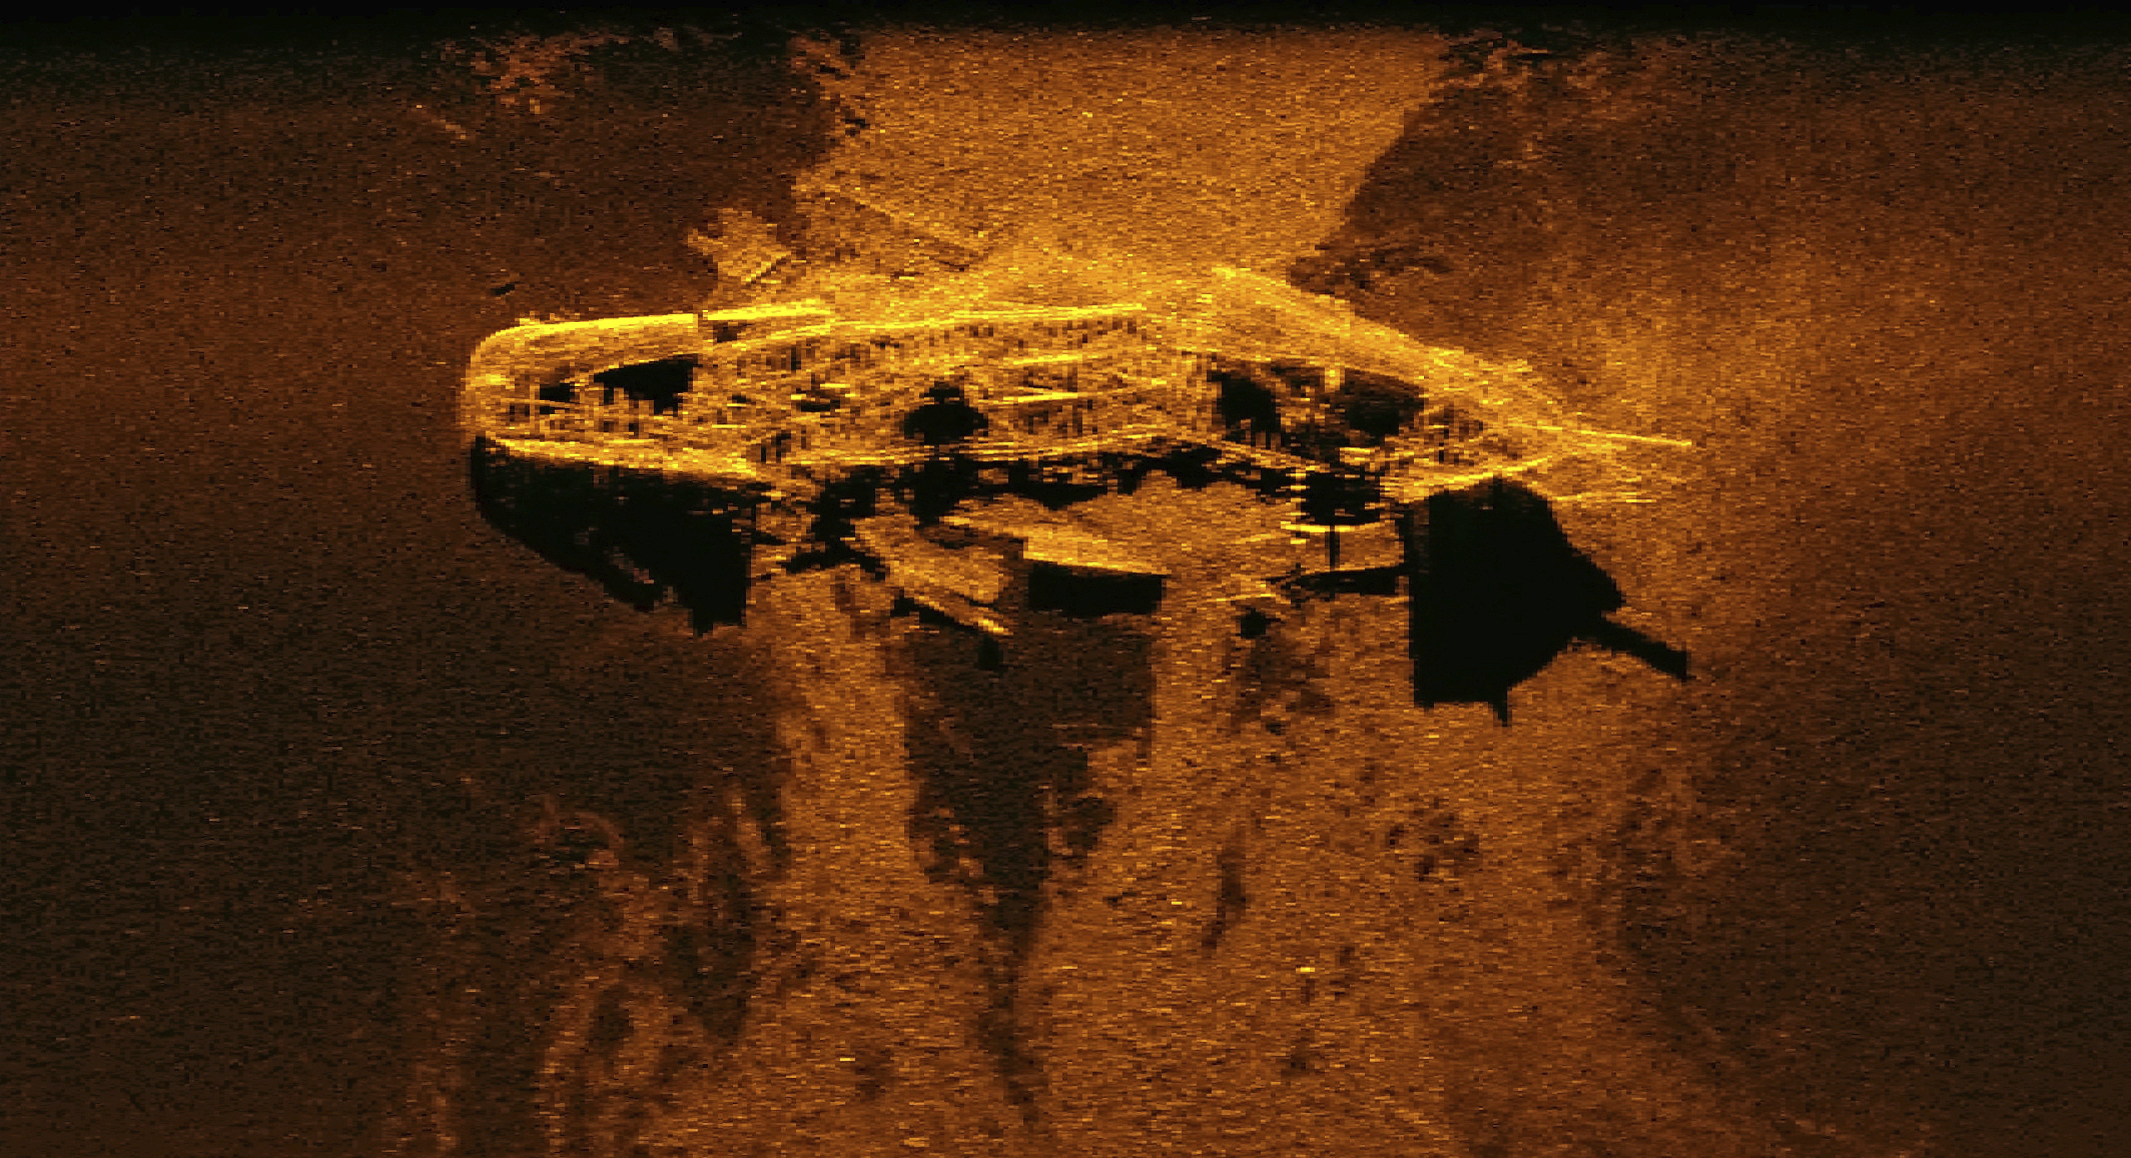 How the Failed Search for MH370 Solved 19th Century Maritime Mysteries